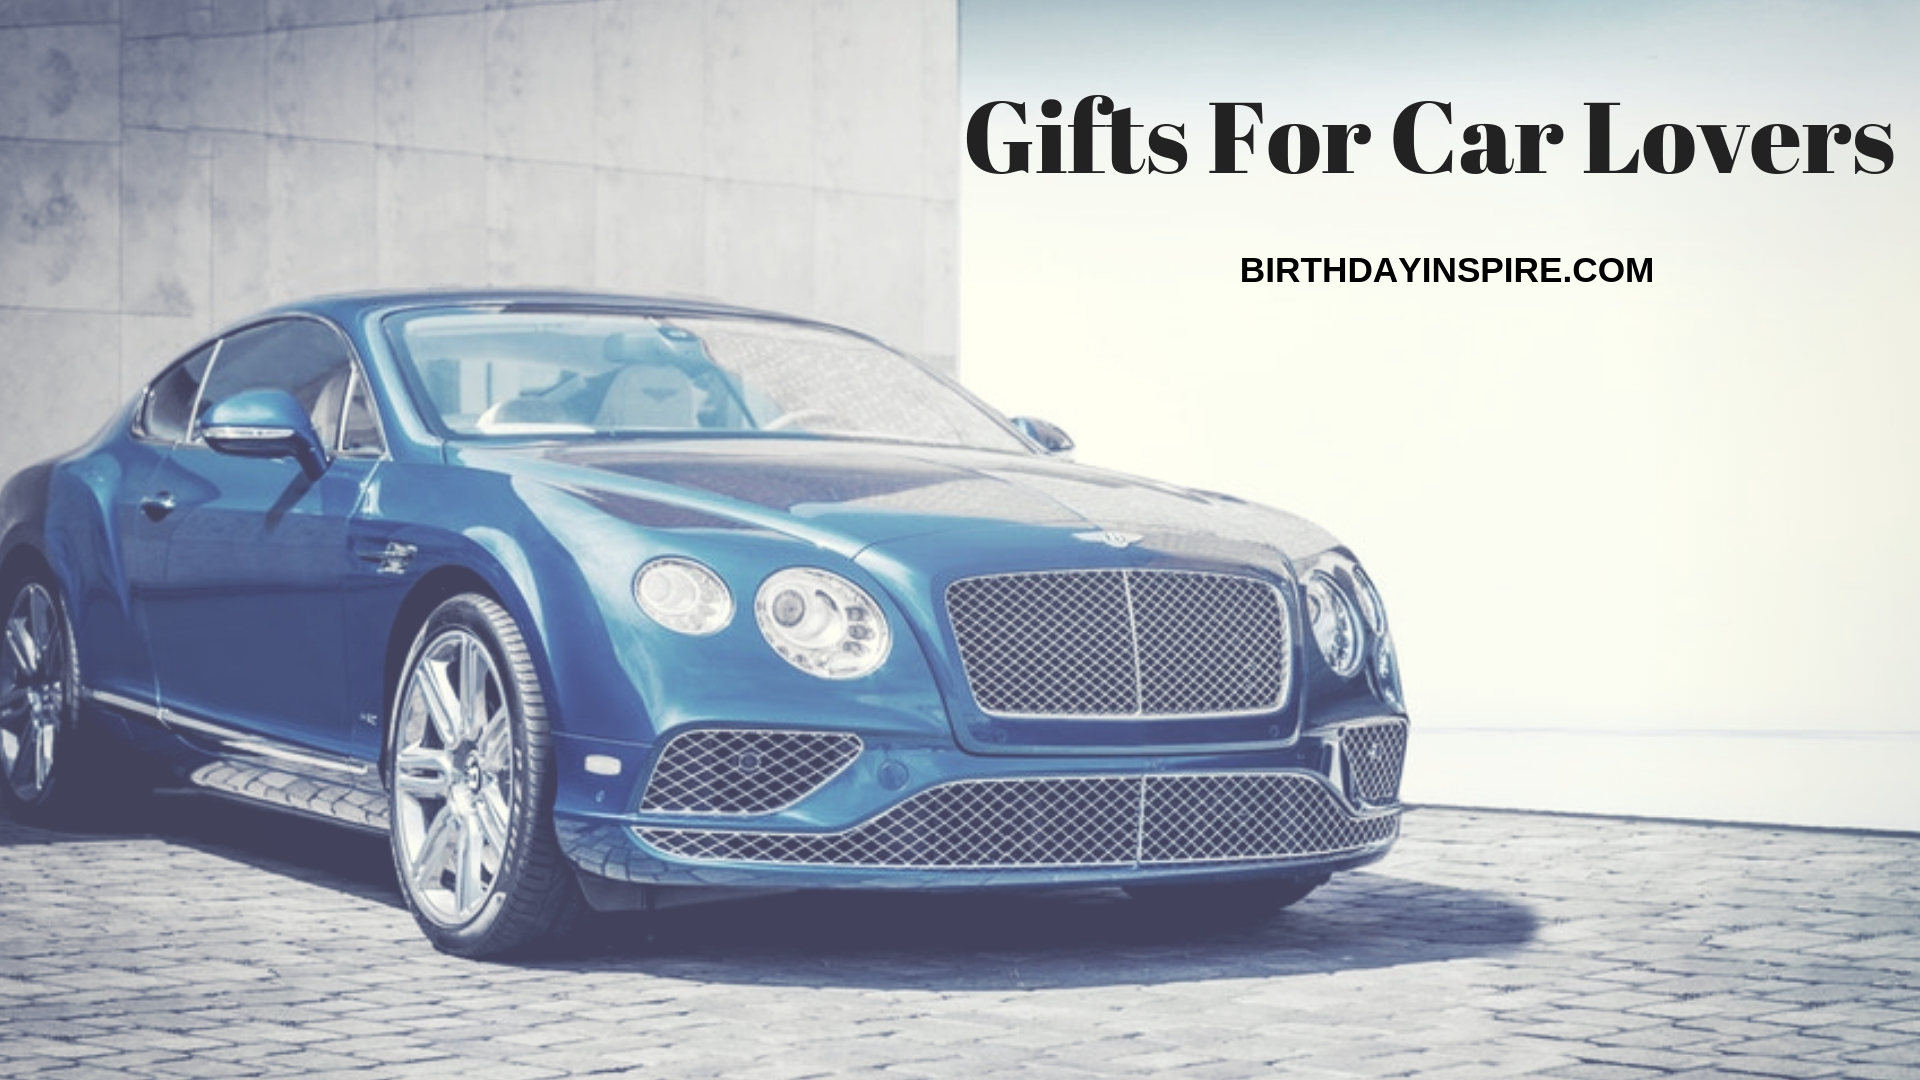 GIFTS FOR CAR LOVERS